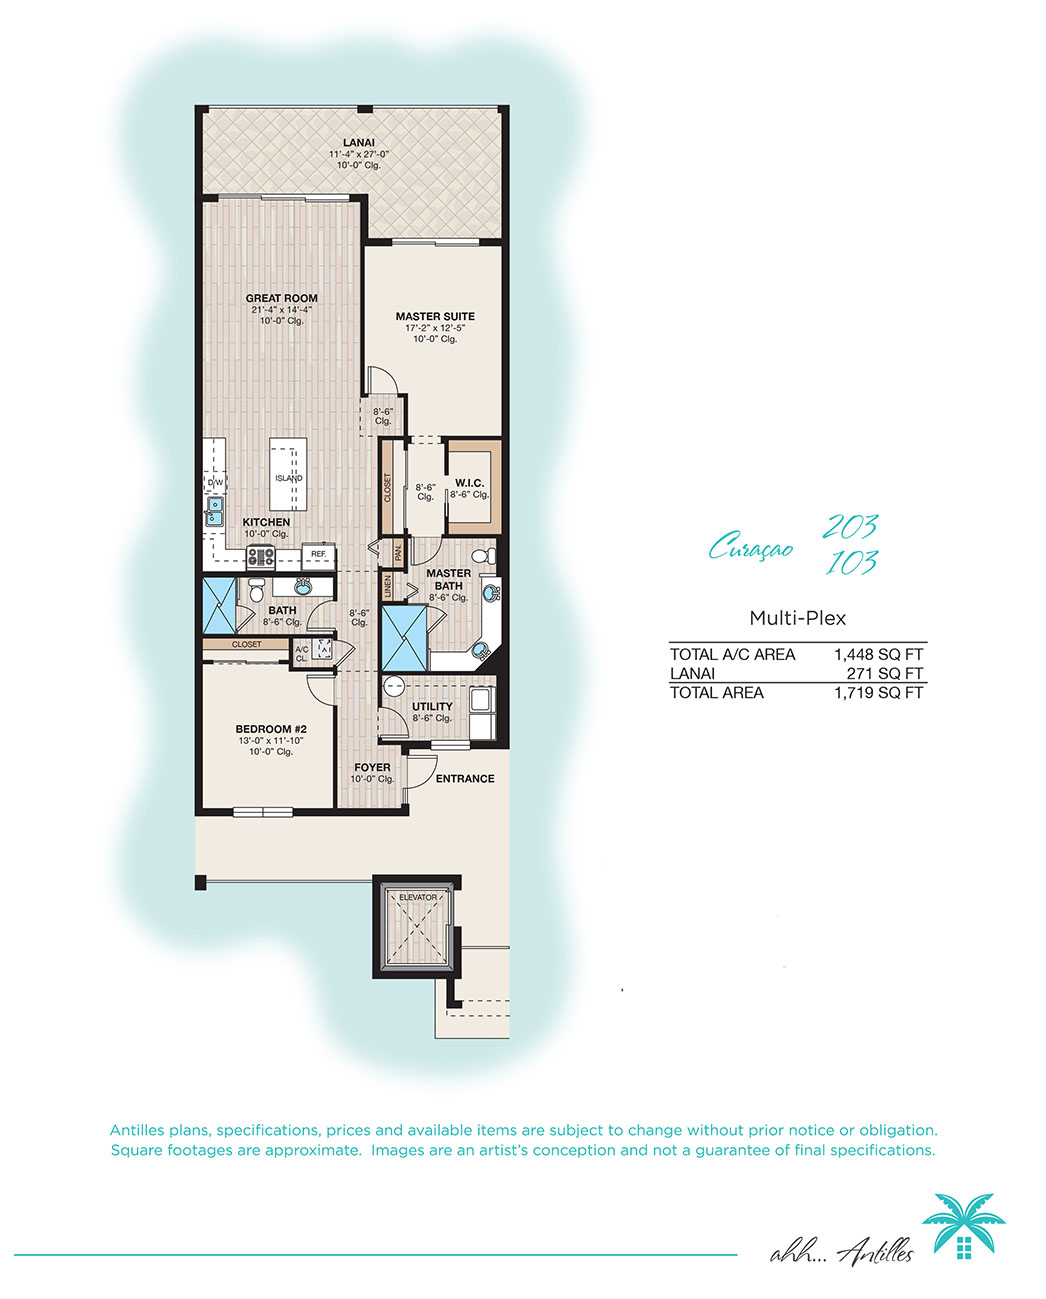 Multiplex Curacao 103 | Antilles of Naples, Florida - West Indies Styled Residential Resort